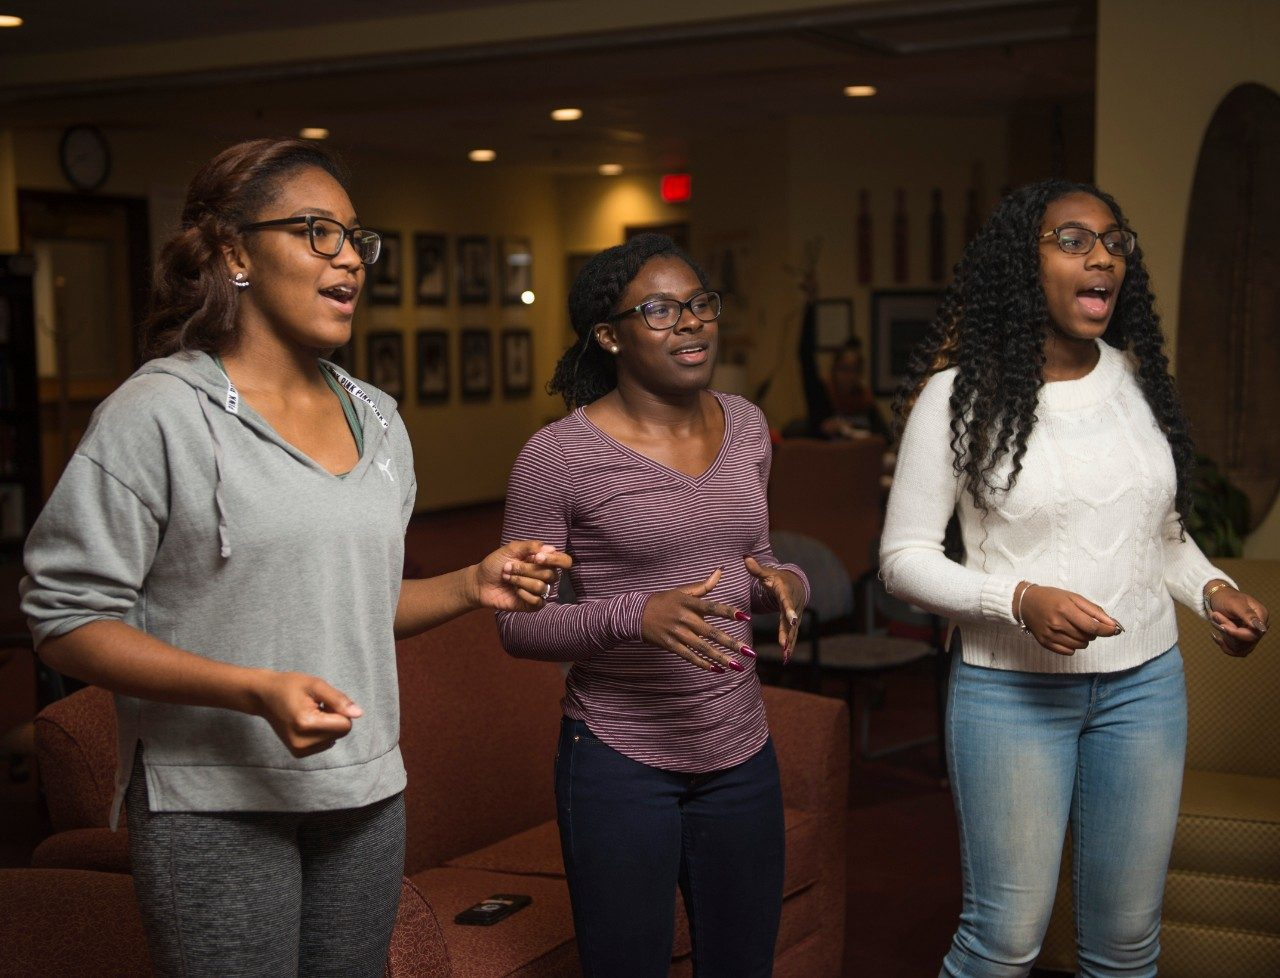 A'via Linton, Lauren Brown, and Michelle Ya Diul, Virginia Tech students and members of the Enlightened Gospel Choir, rehearse in the Black Cultural Center.